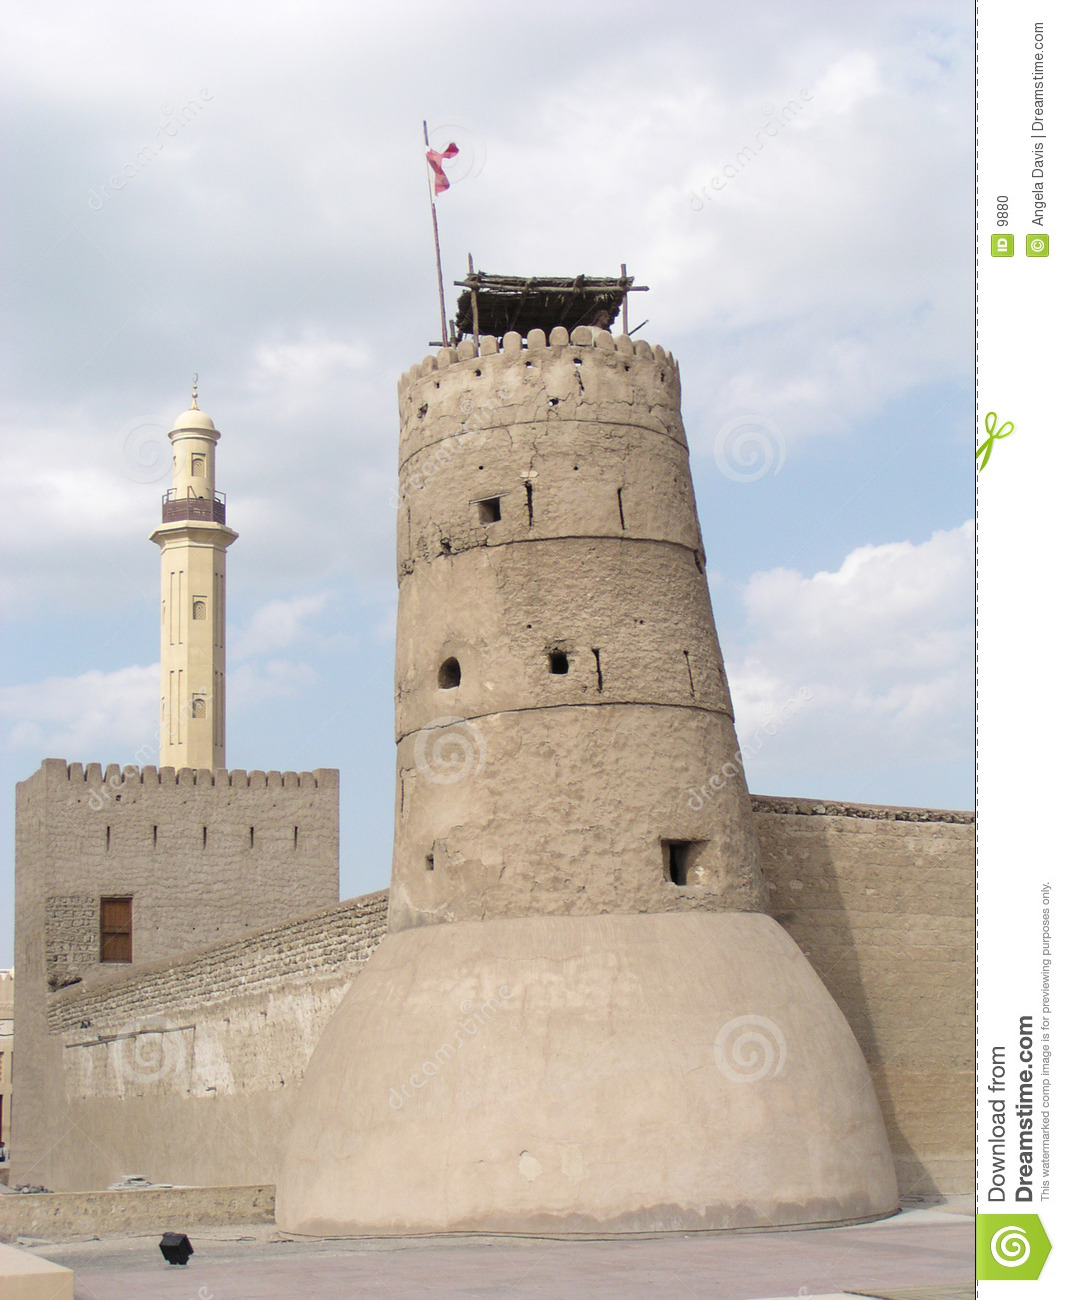 Old Fort (Dubai)